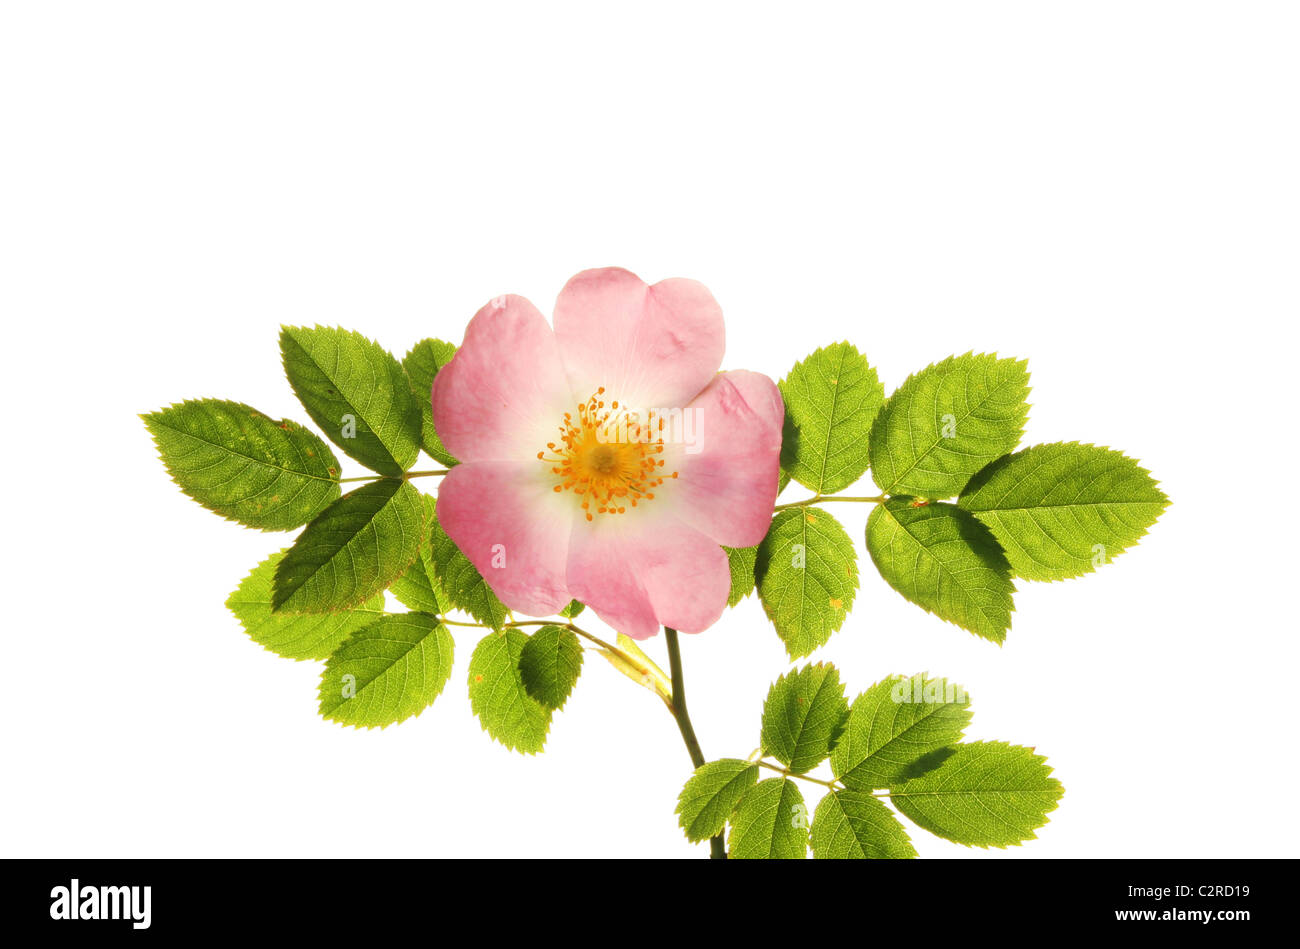 Dog rose flower and leaves isolated against white - Stock Image